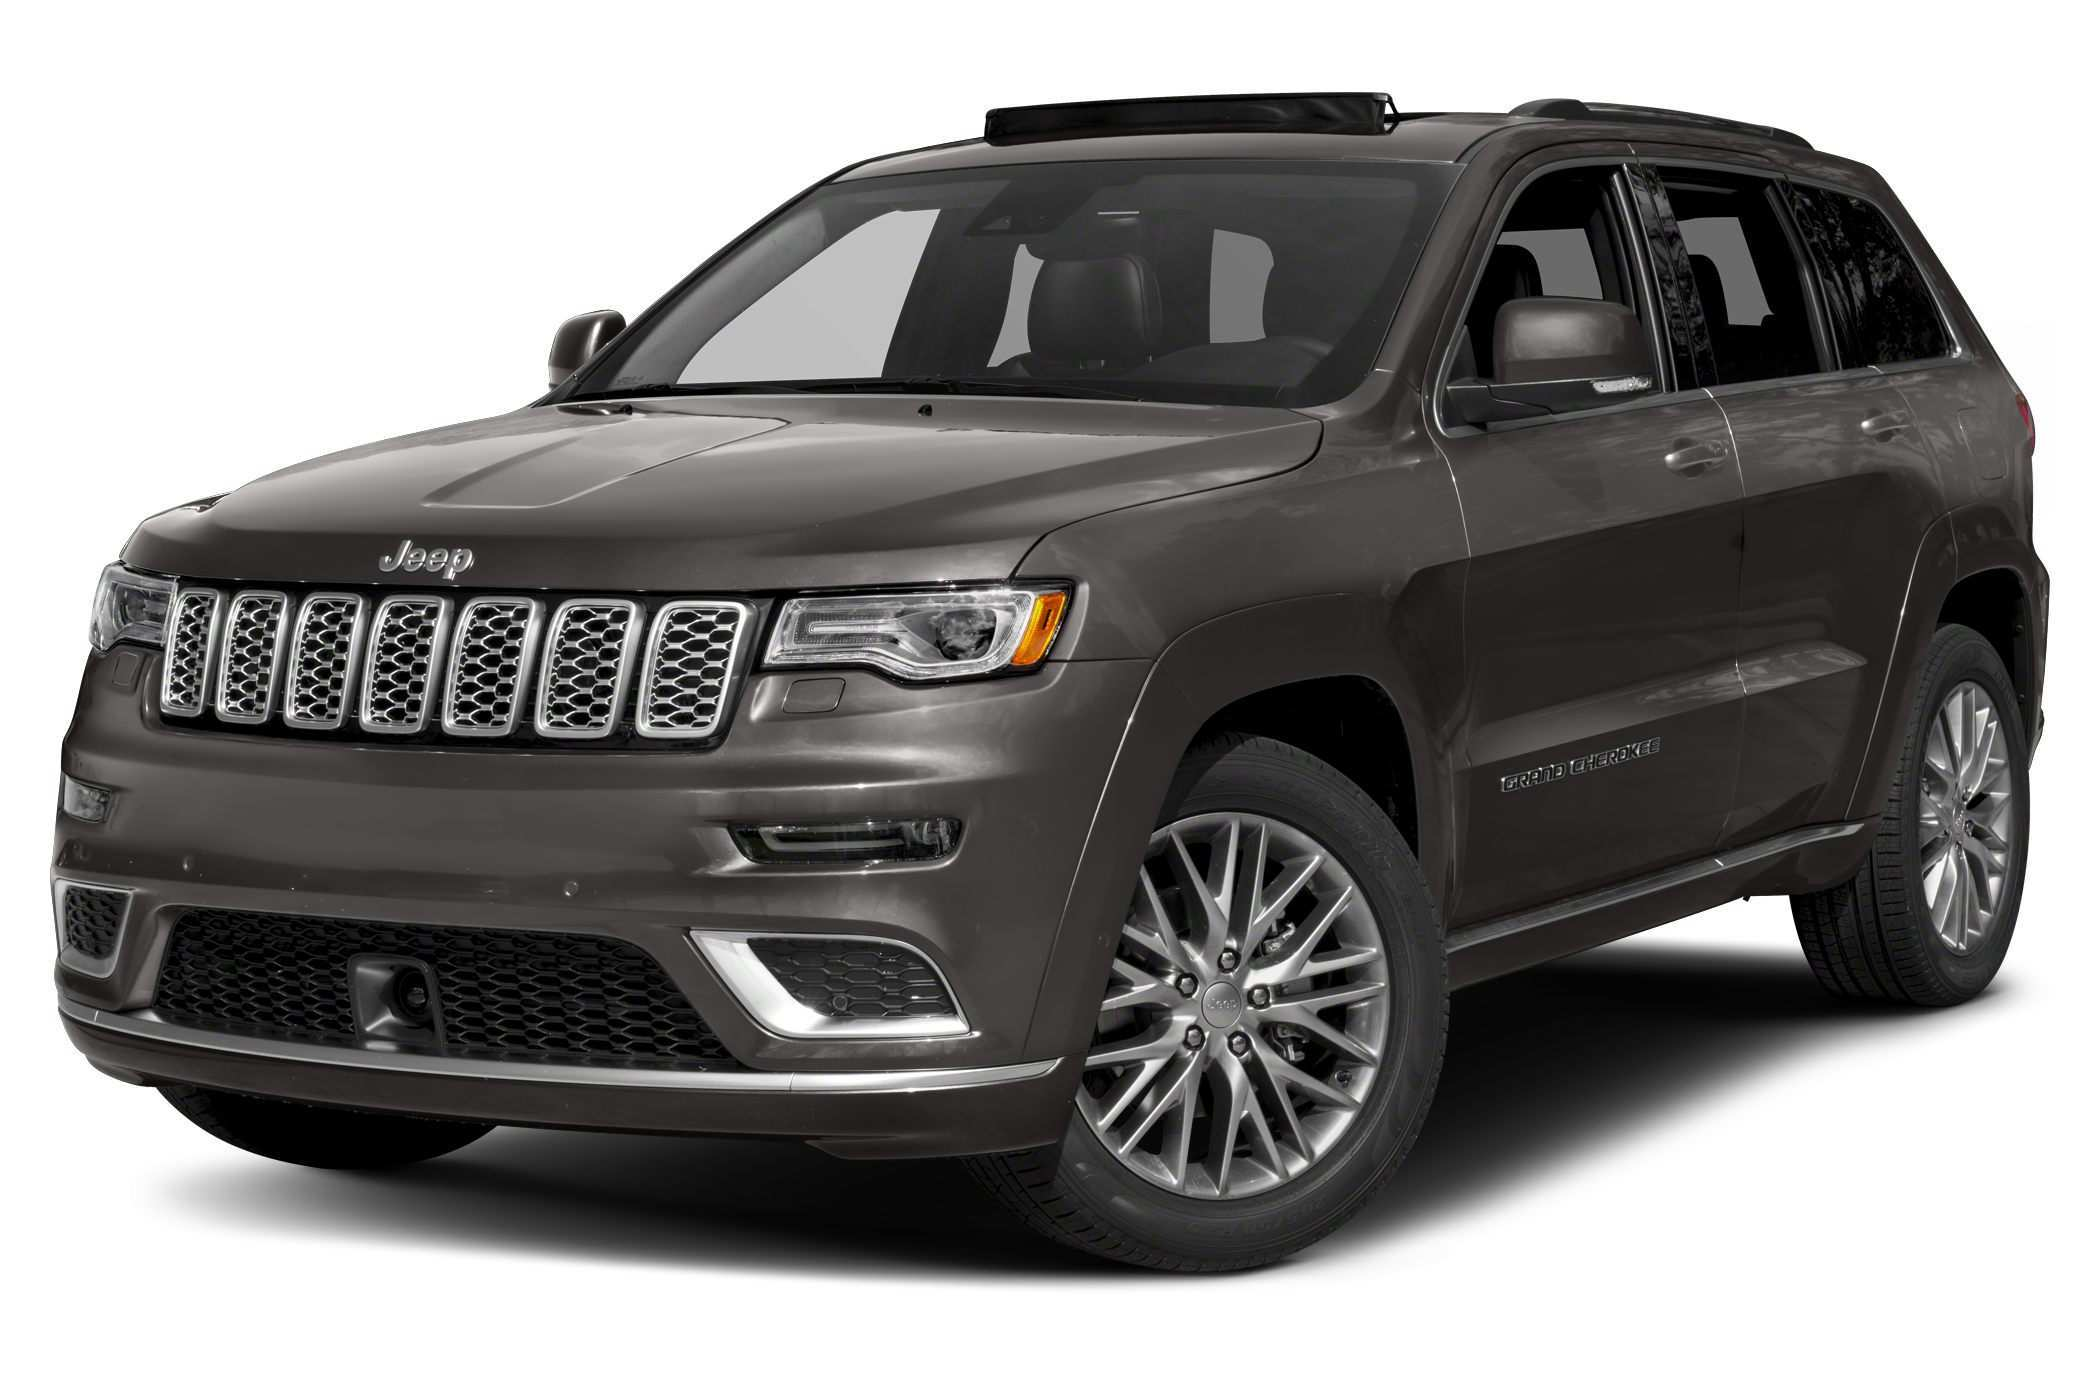 54 The The Grand Cherokee Jeep 2019 Exterior And Interior Review Price with The Grand Cherokee Jeep 2019 Exterior And Interior Review